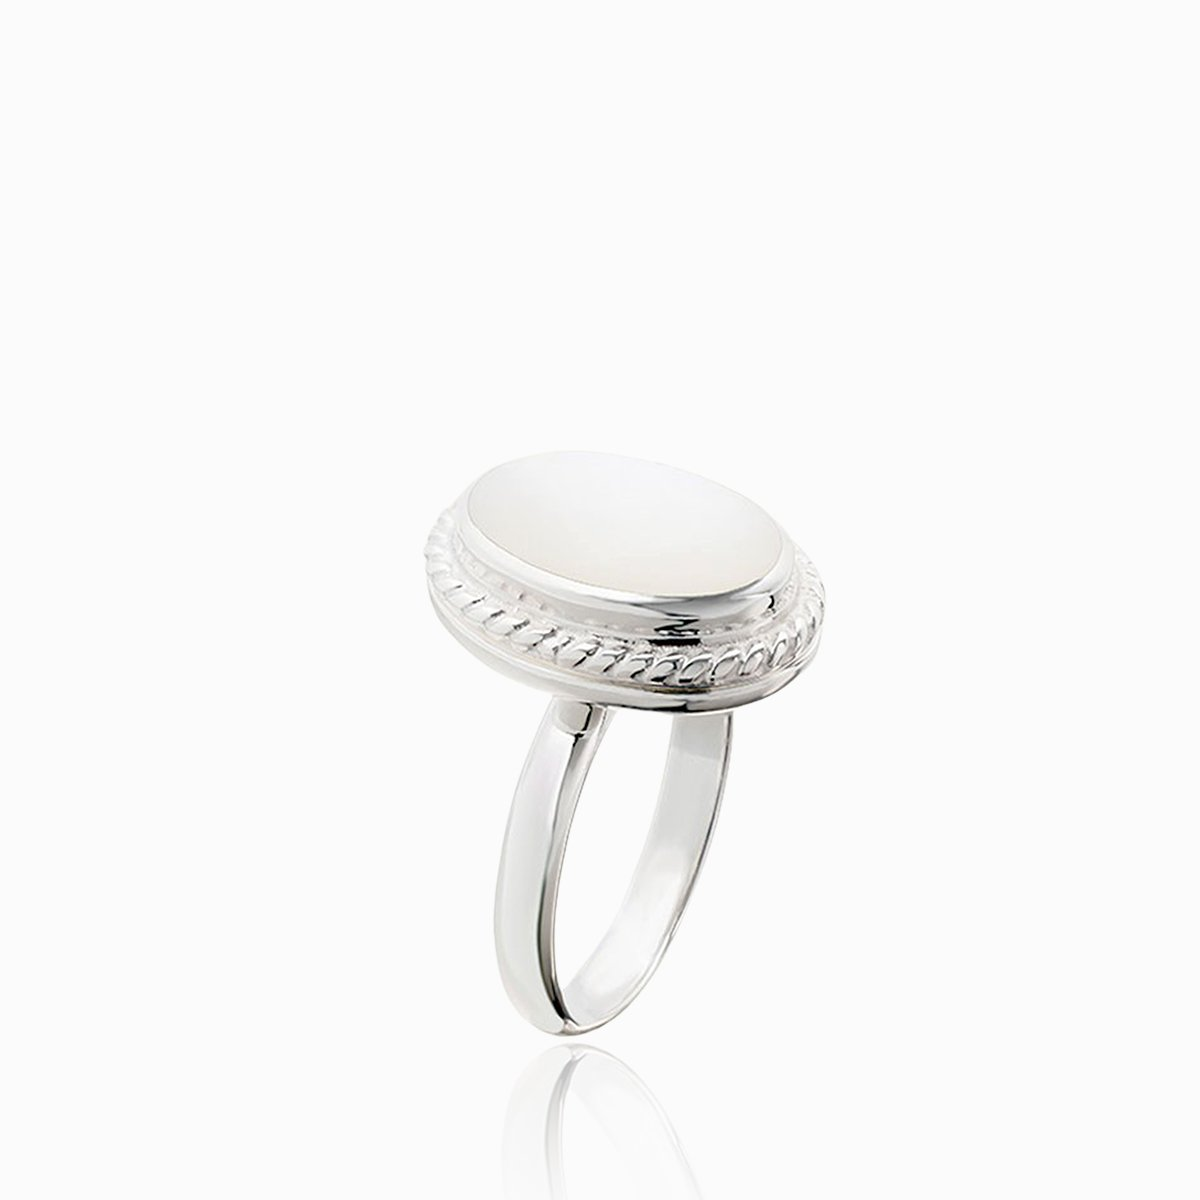 Product title: Mother of Pearl Locket Ring, product type: Ring